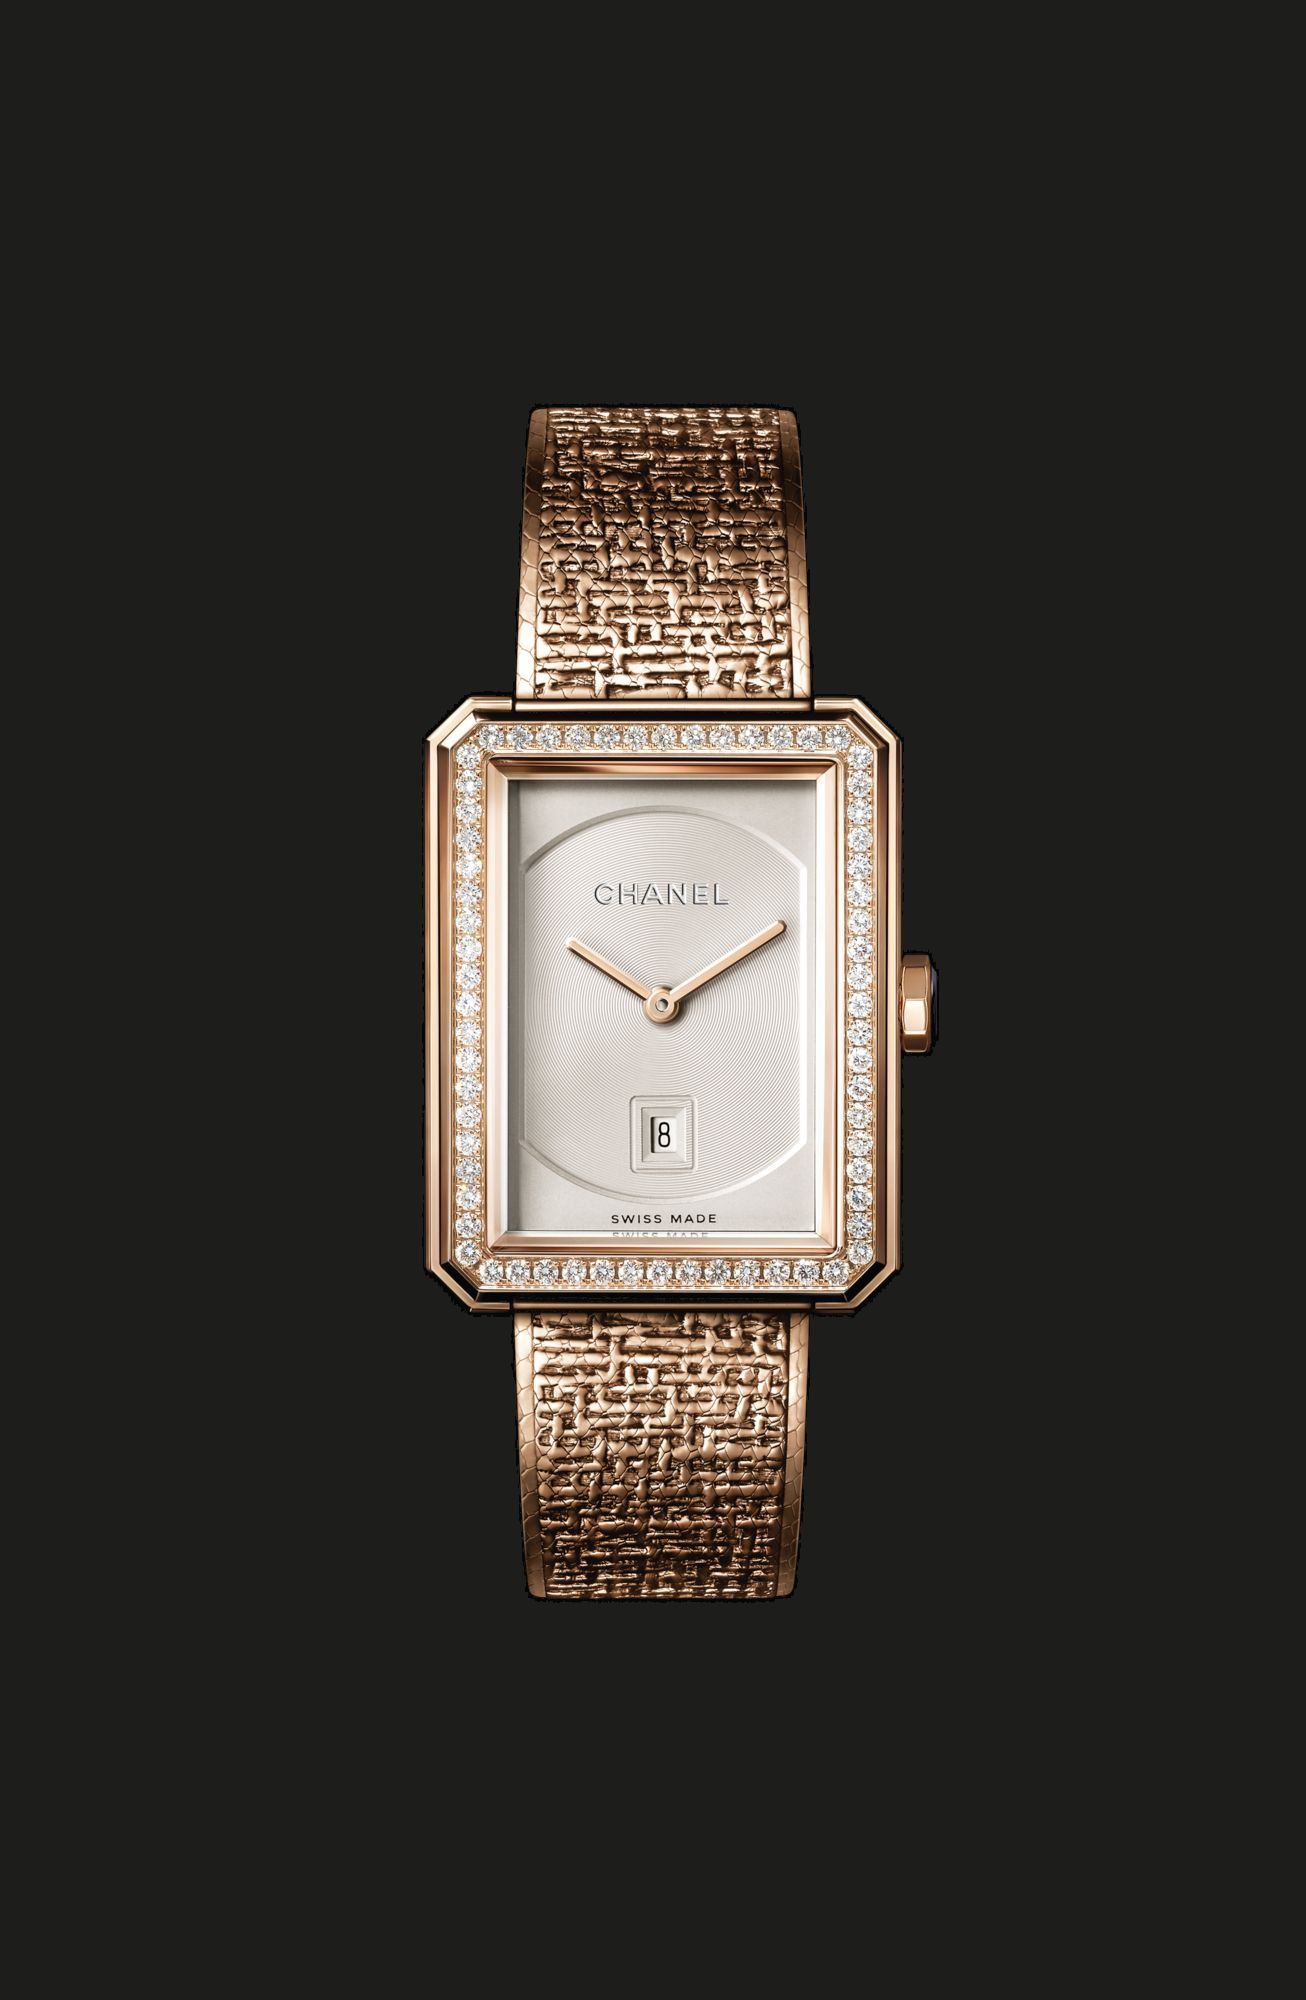 5 Luxury Watch Brands Are Developing Precious Metal Alloys To Make Exquisite Timepieces